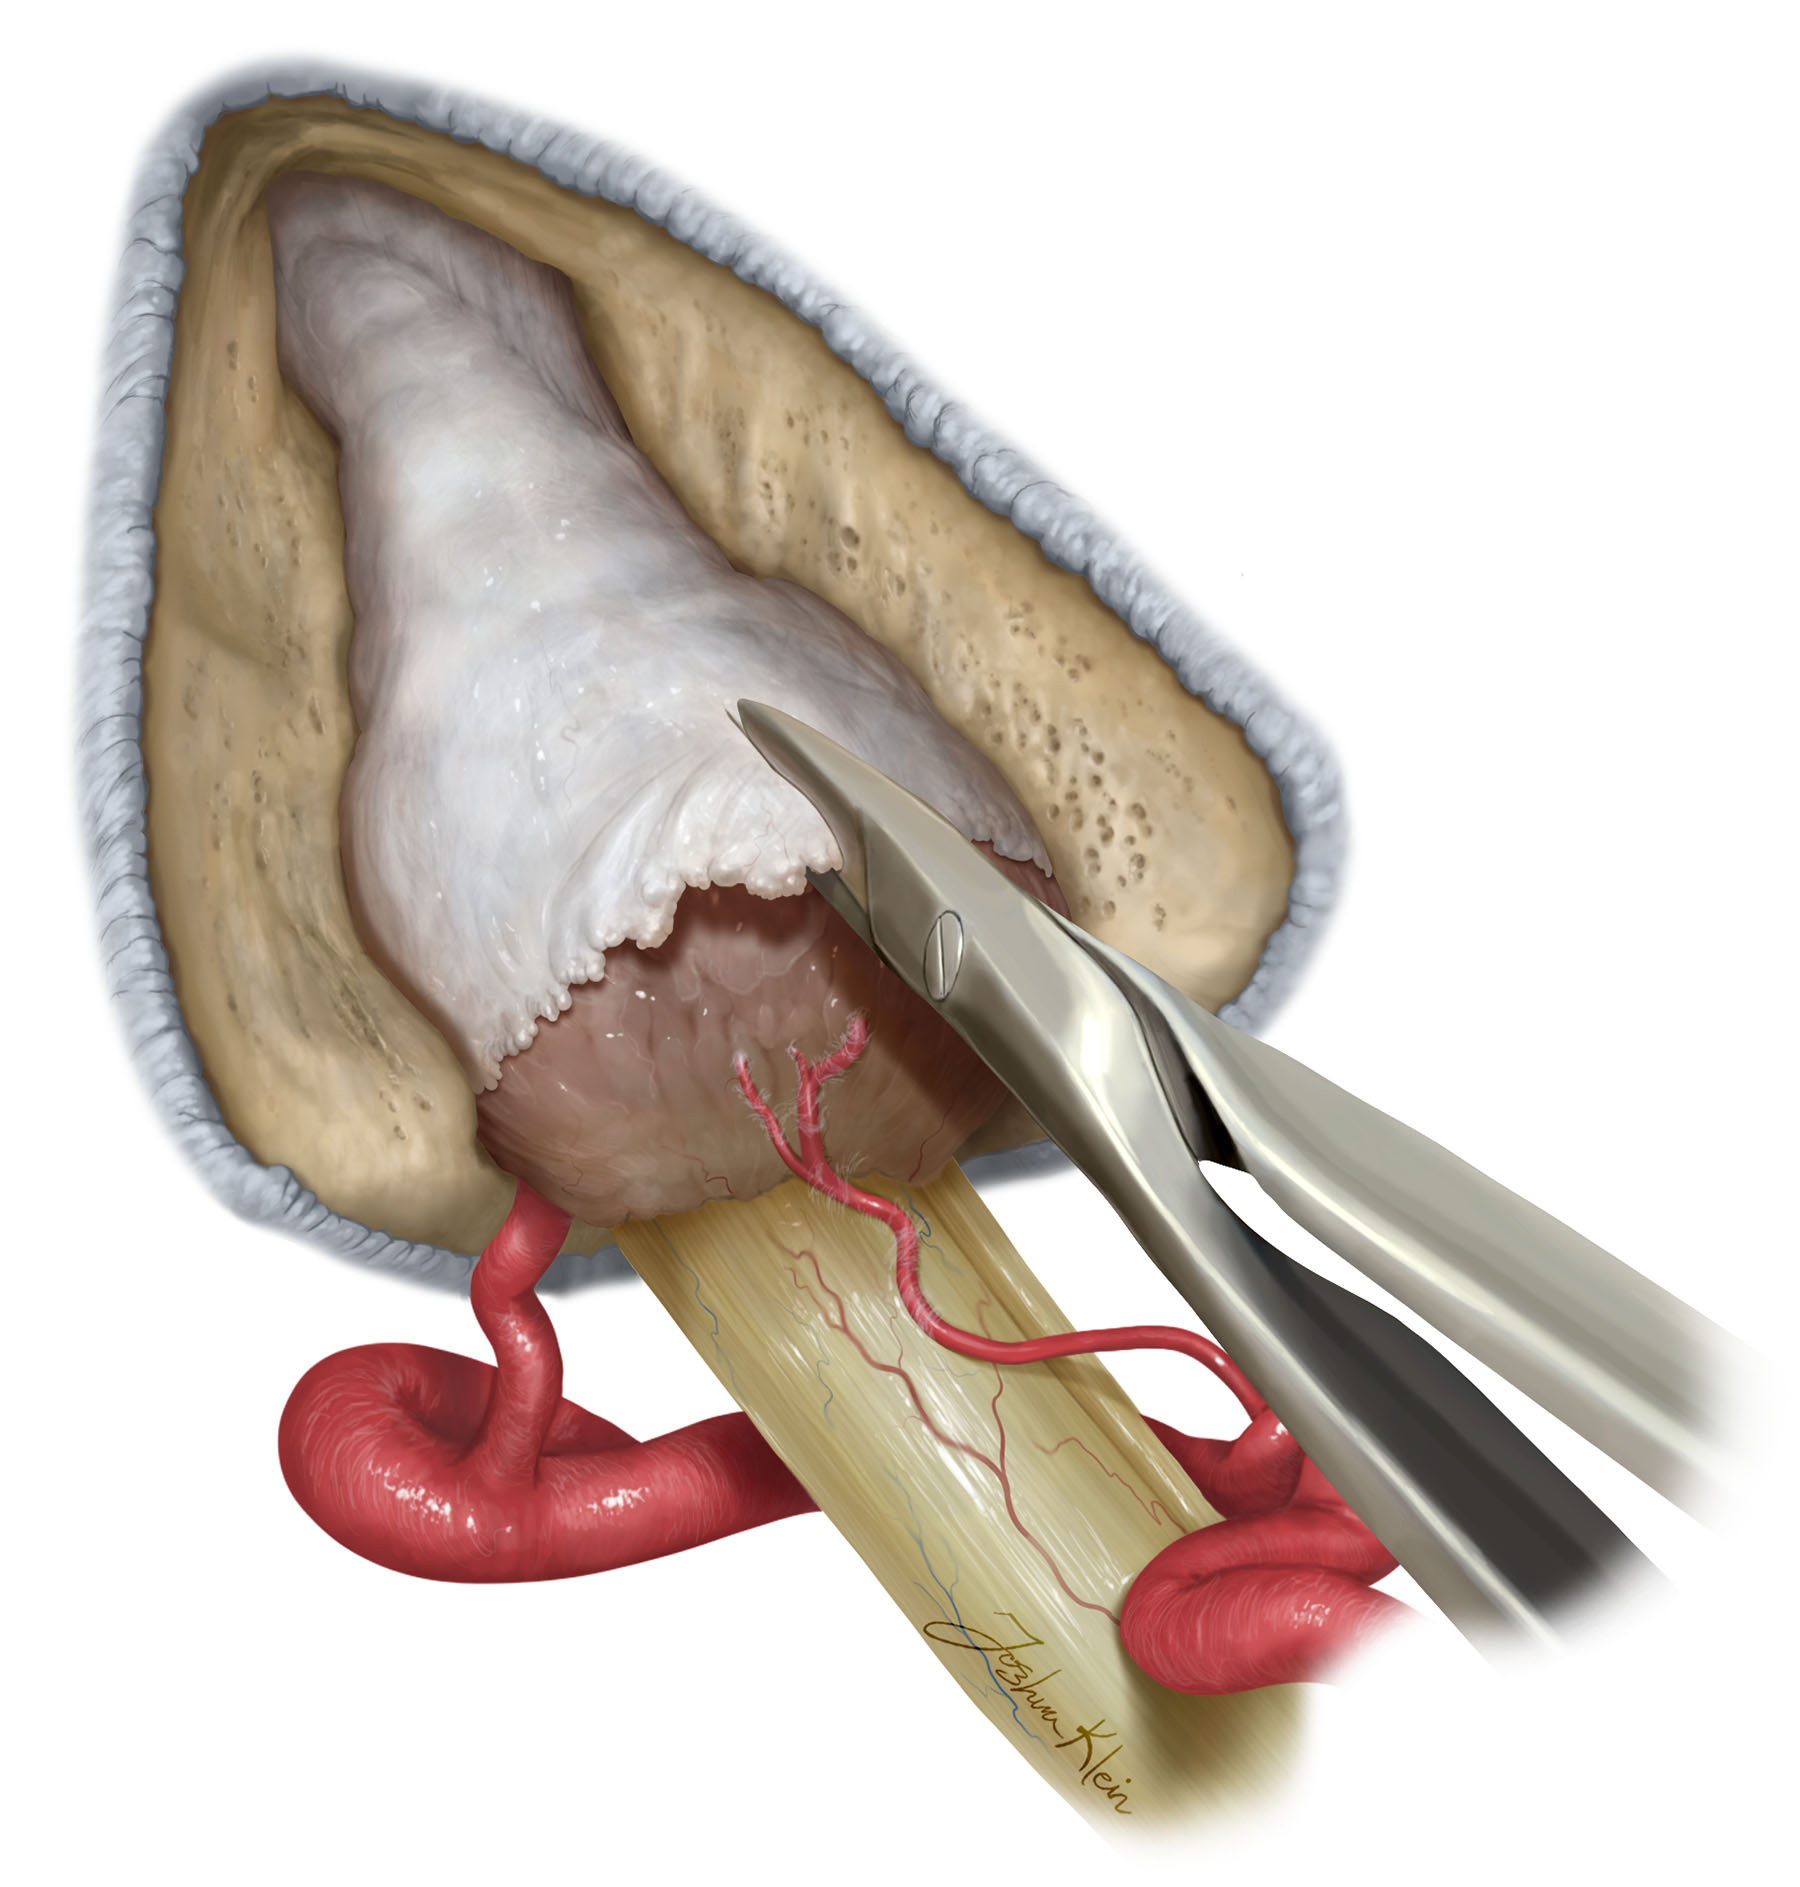 Figure 6: The dura of the internal auditory canal is opened via sharp dissection.